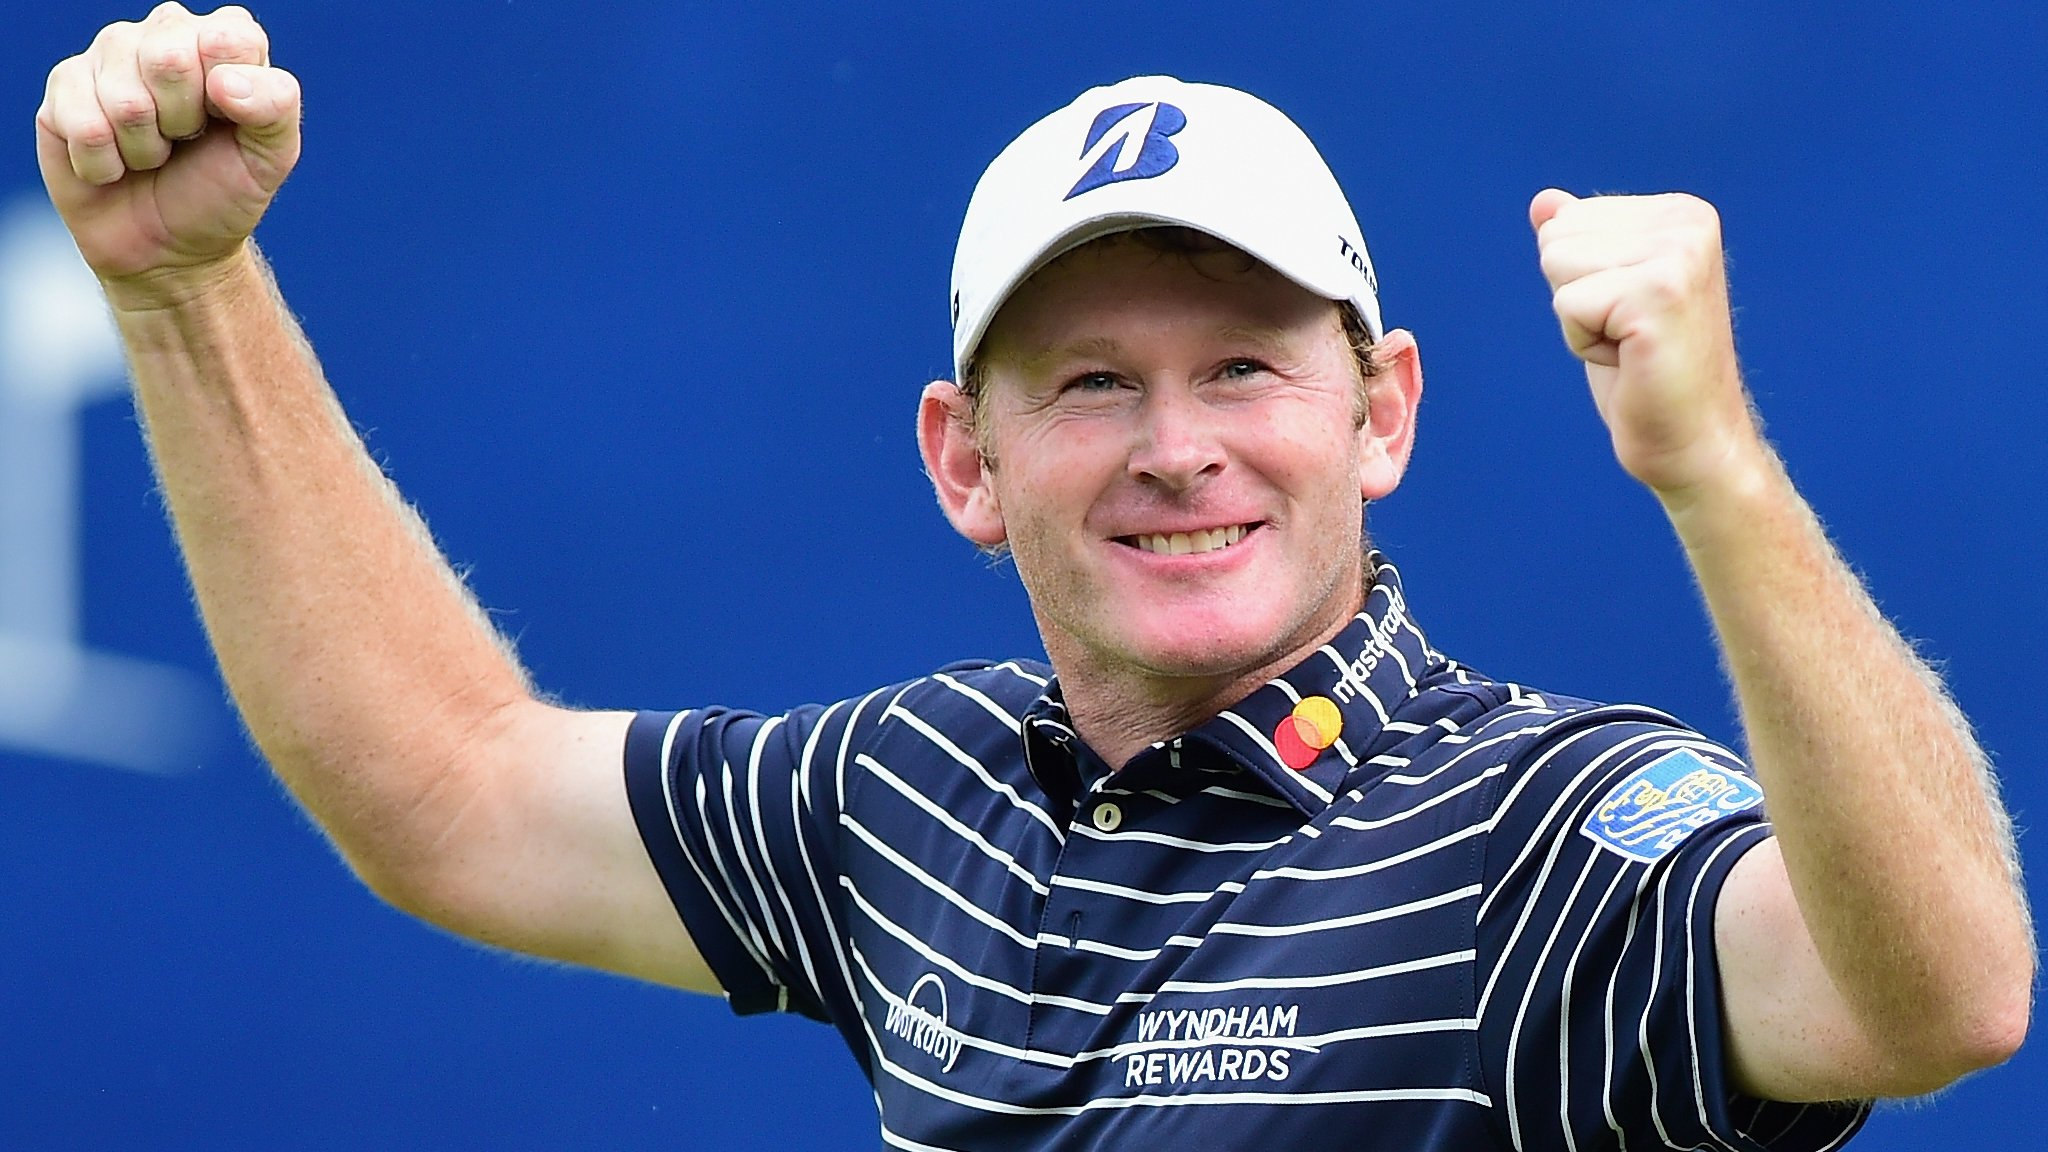 Snedeker leads from start to win Wyndham Championship